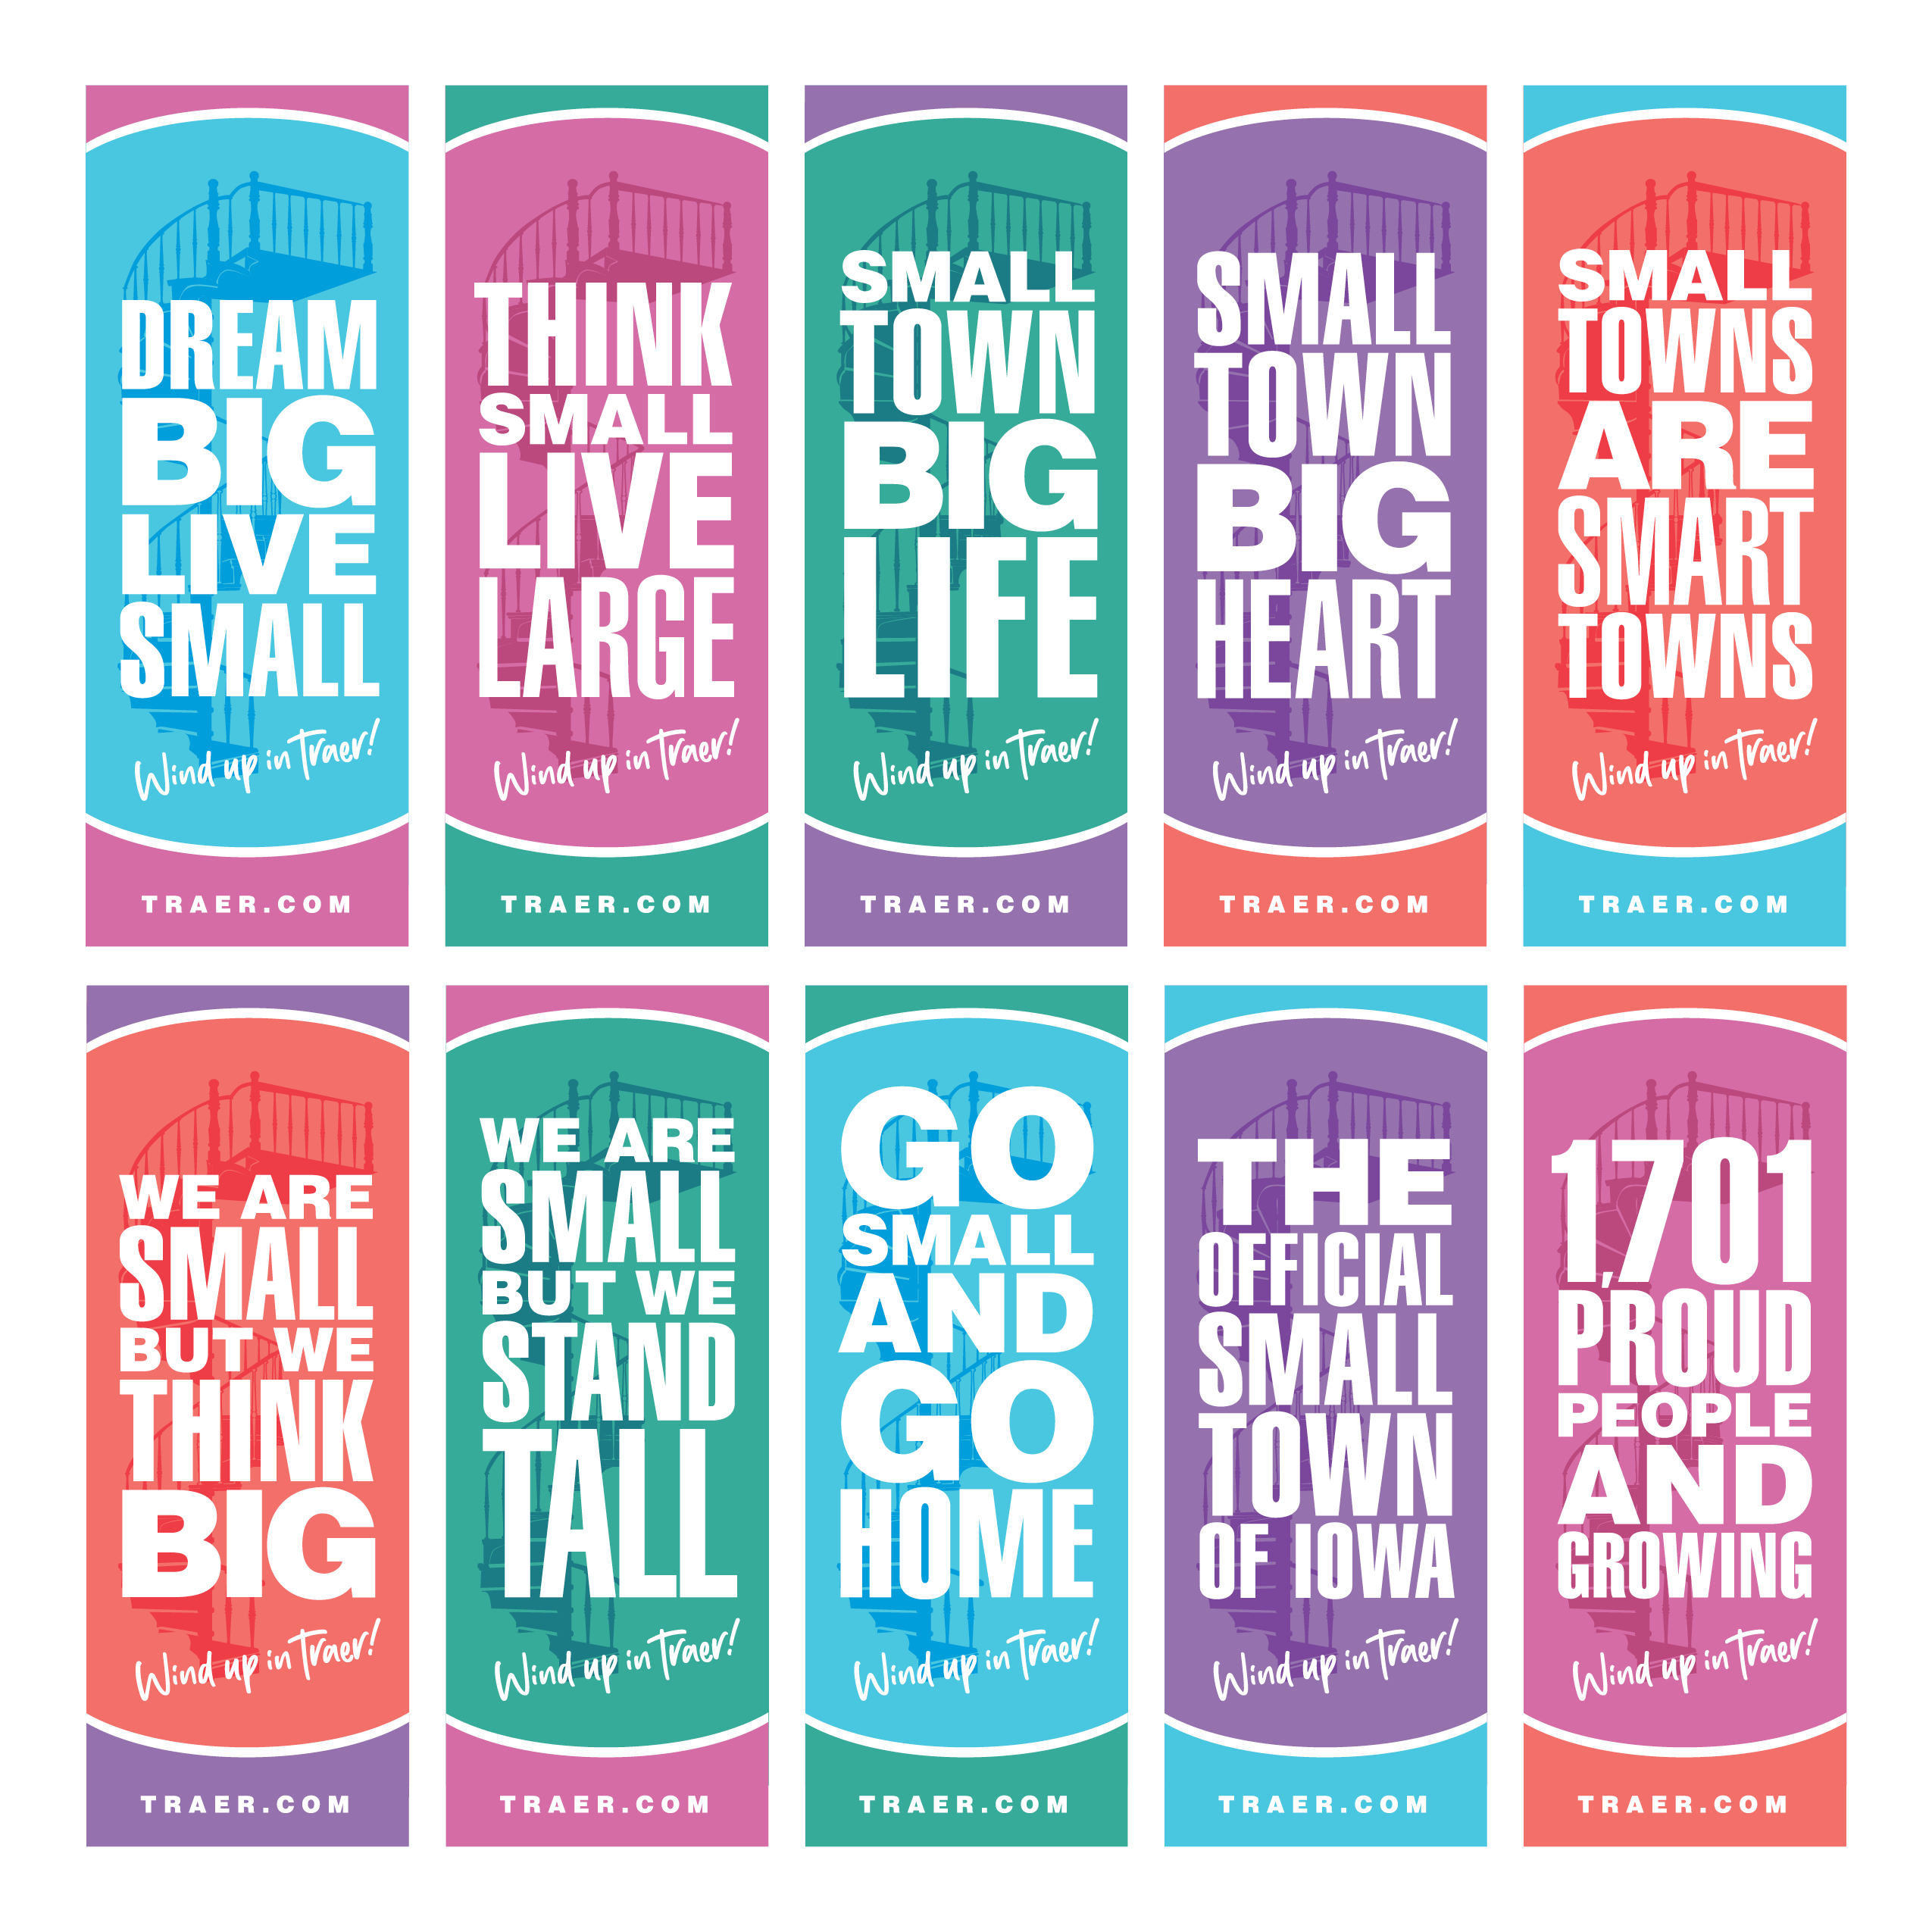 Traer Go Small Town Banners